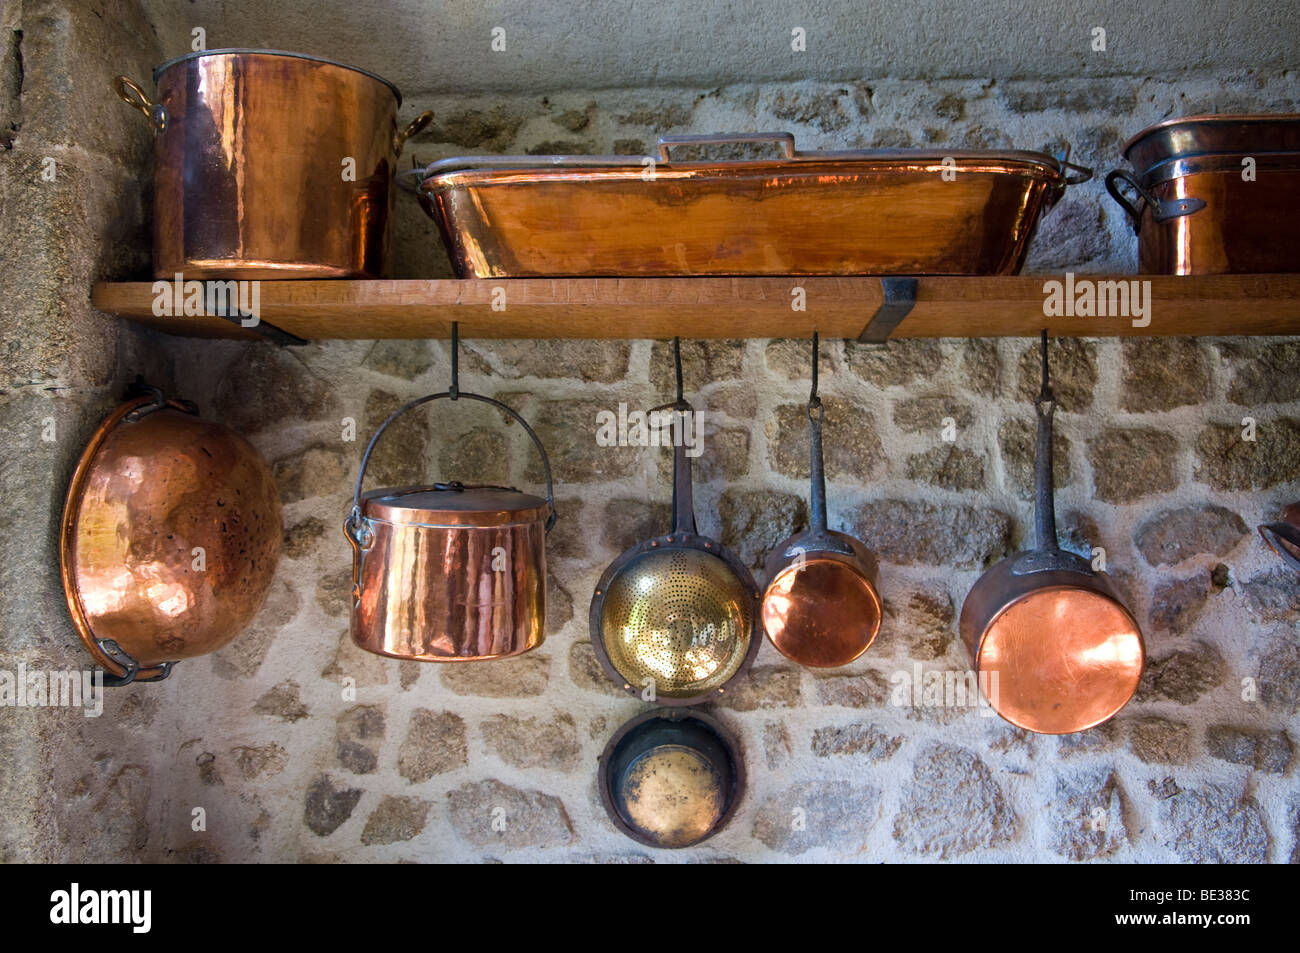 A range of brass pots and pans in a French chateau kitchen Stock Photo